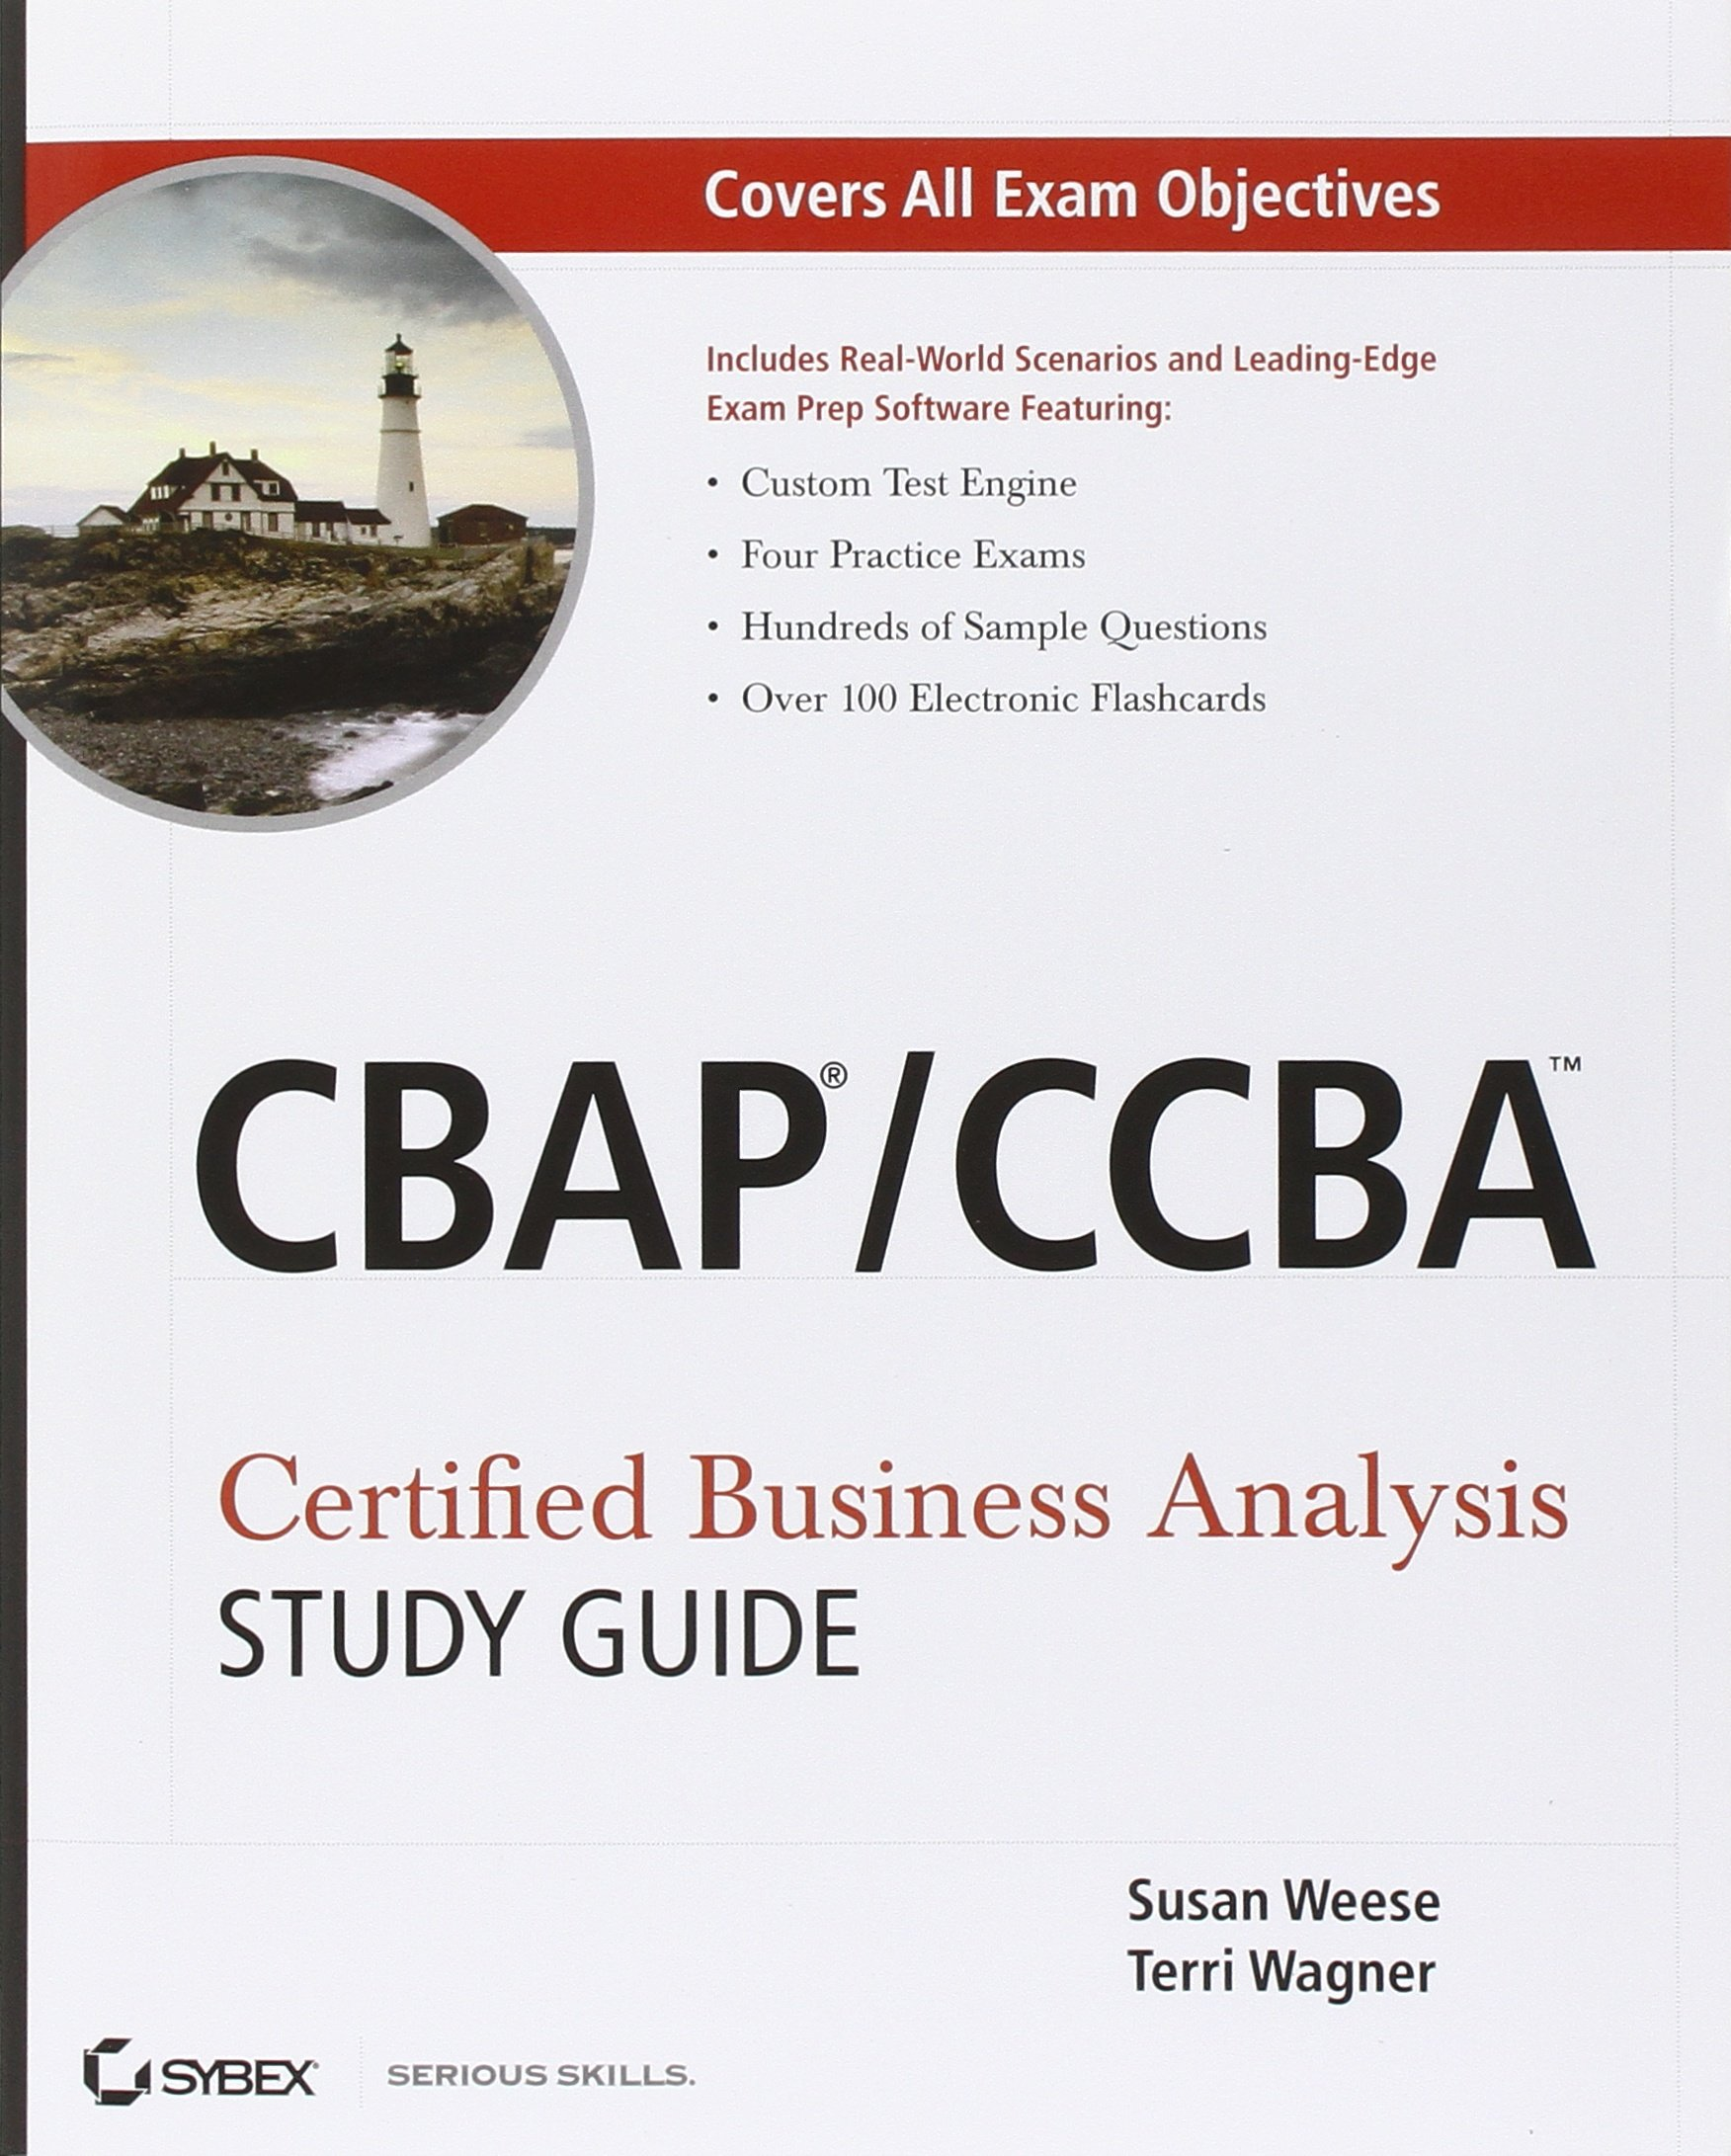 Cbap Ccba Certified Business Analysis Study Guide Susan Weese